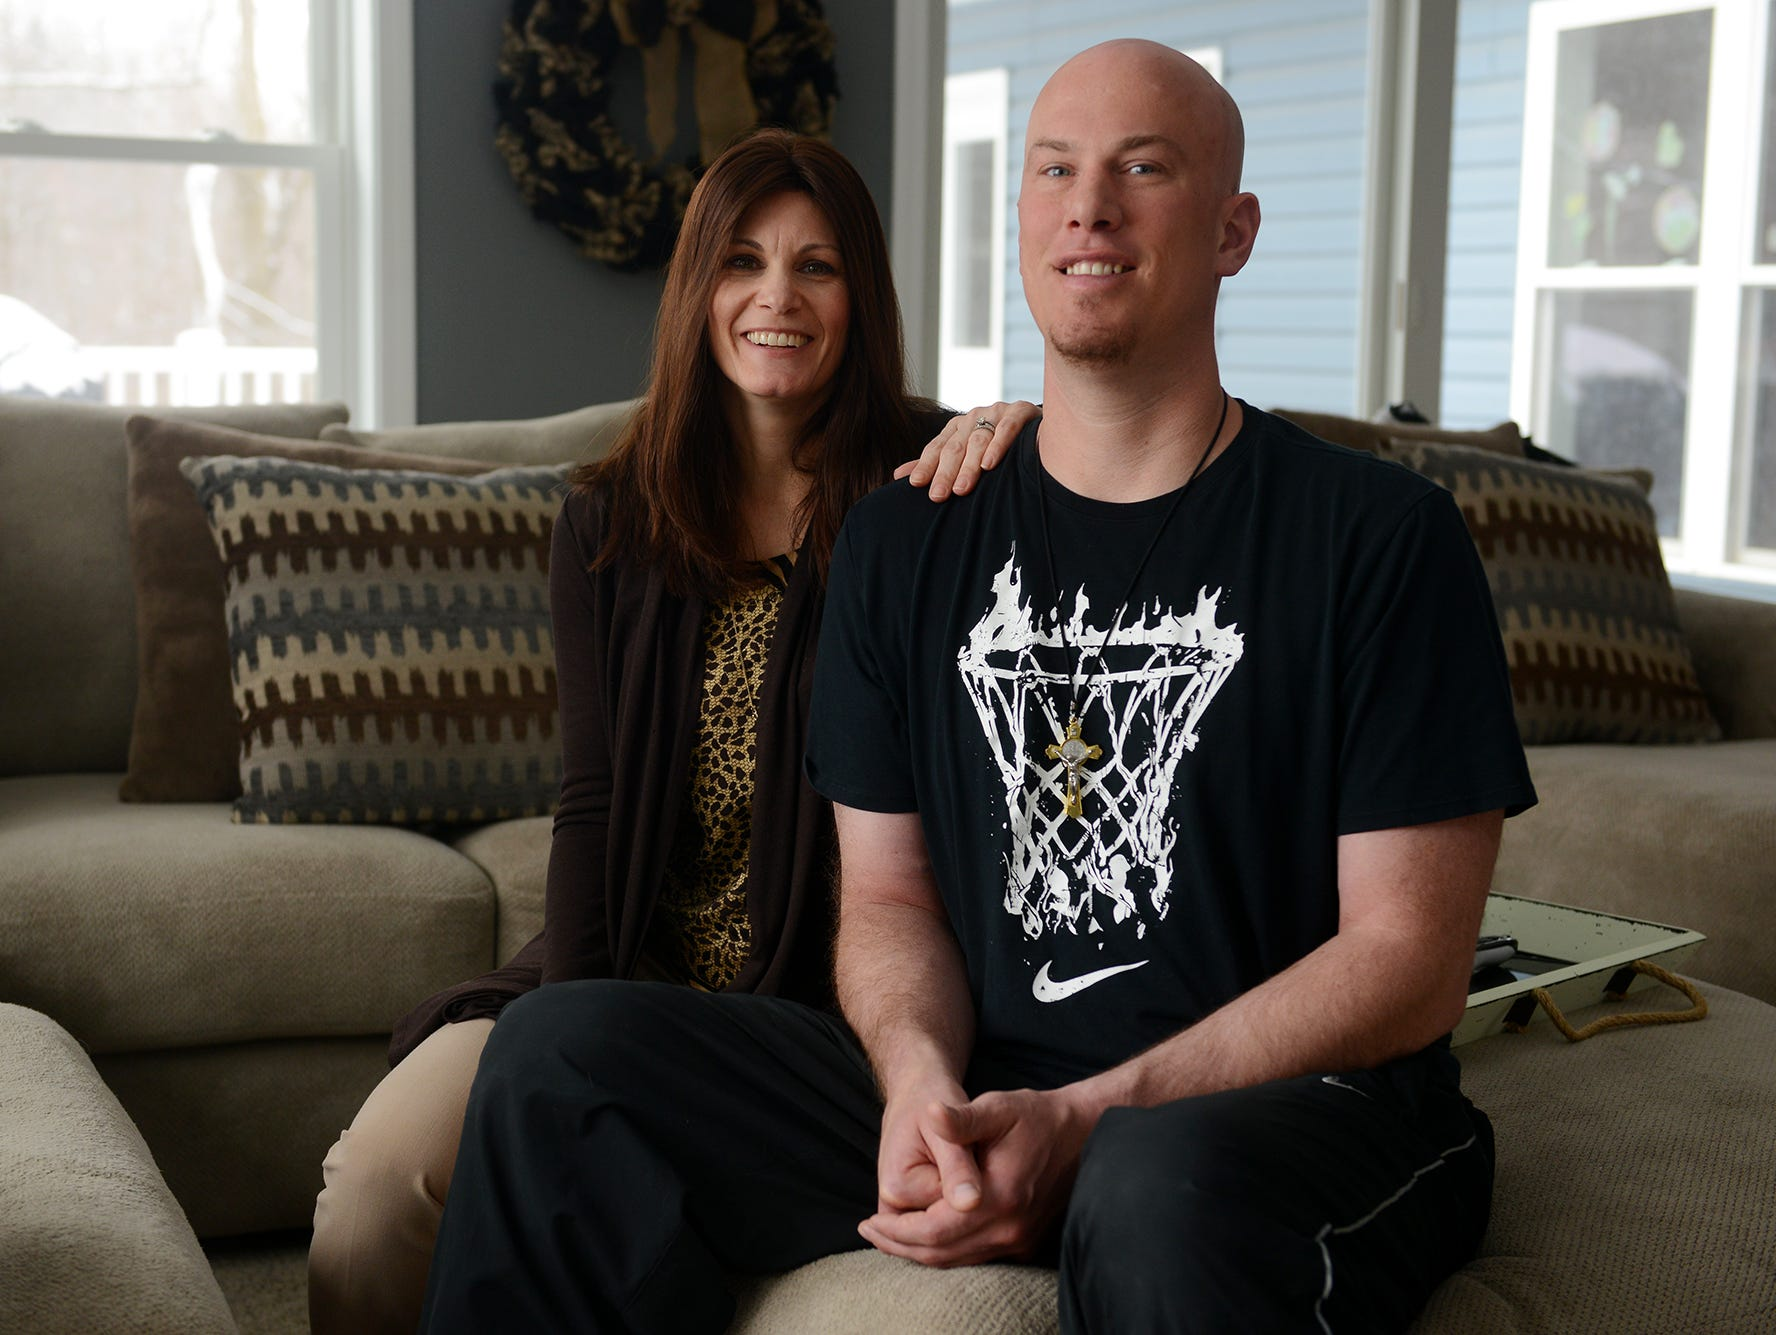 Williamston head basketball coach Jason Bauer and his wife Dawn pose for a portrait on Monday, March 13, 2017 at his home in Williamston. Around the same time last year, he was diagnosed with two brain tumors.